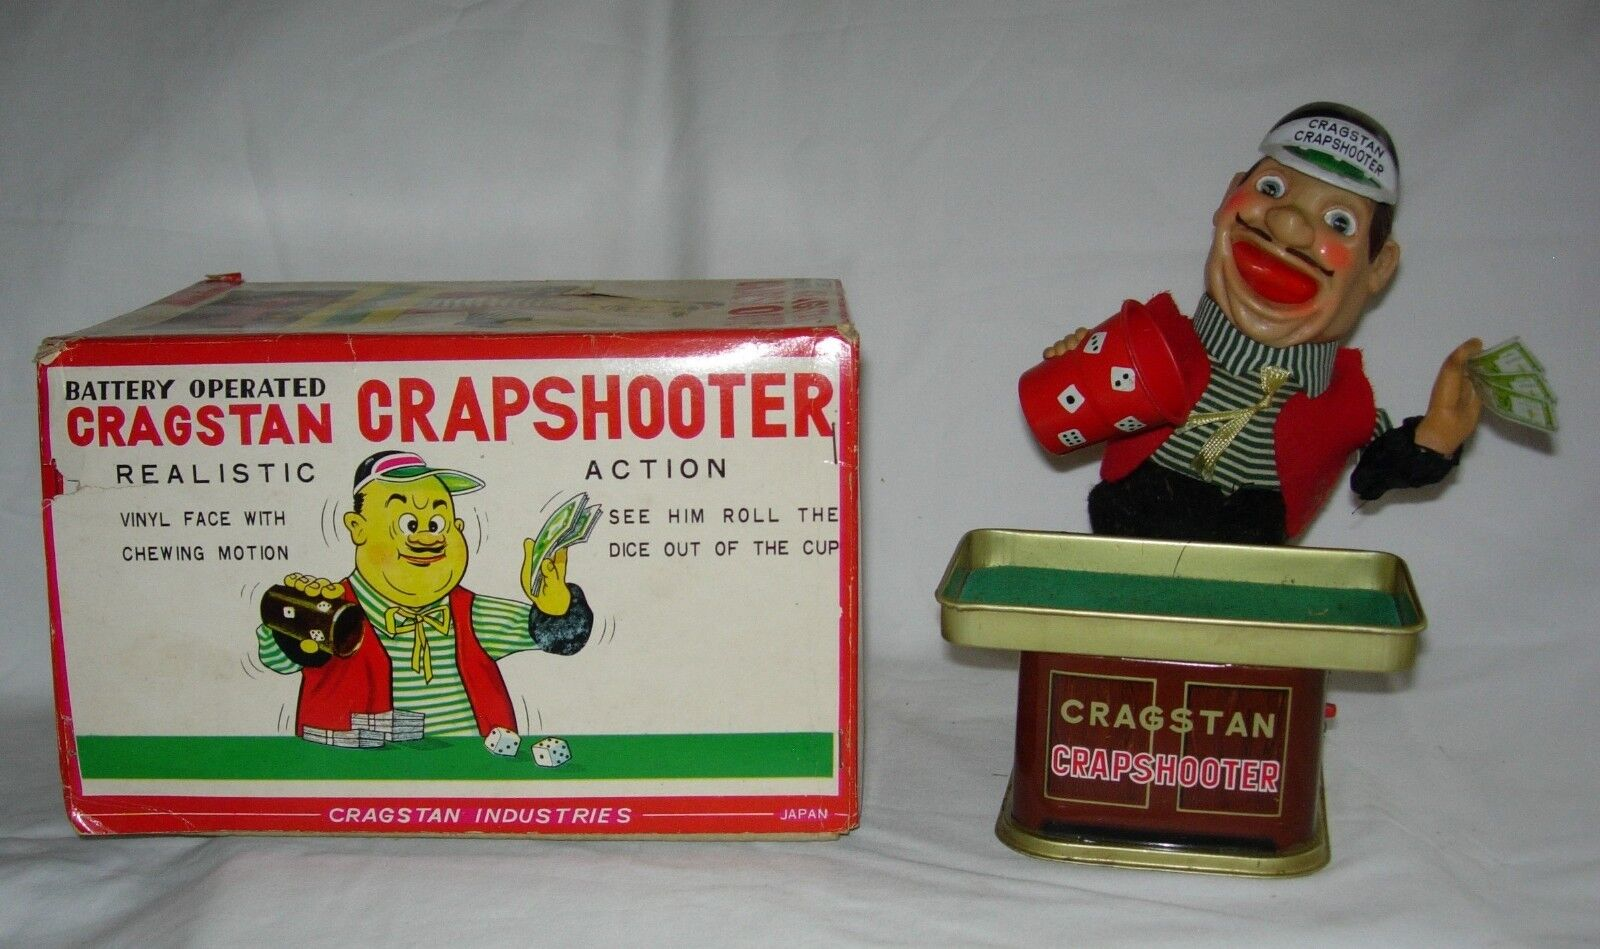 WONDERFUL 1950's CRAGSTON   CRAPSHOOTER  BATTERY OPERATED TOY W ORIGINAL BOX